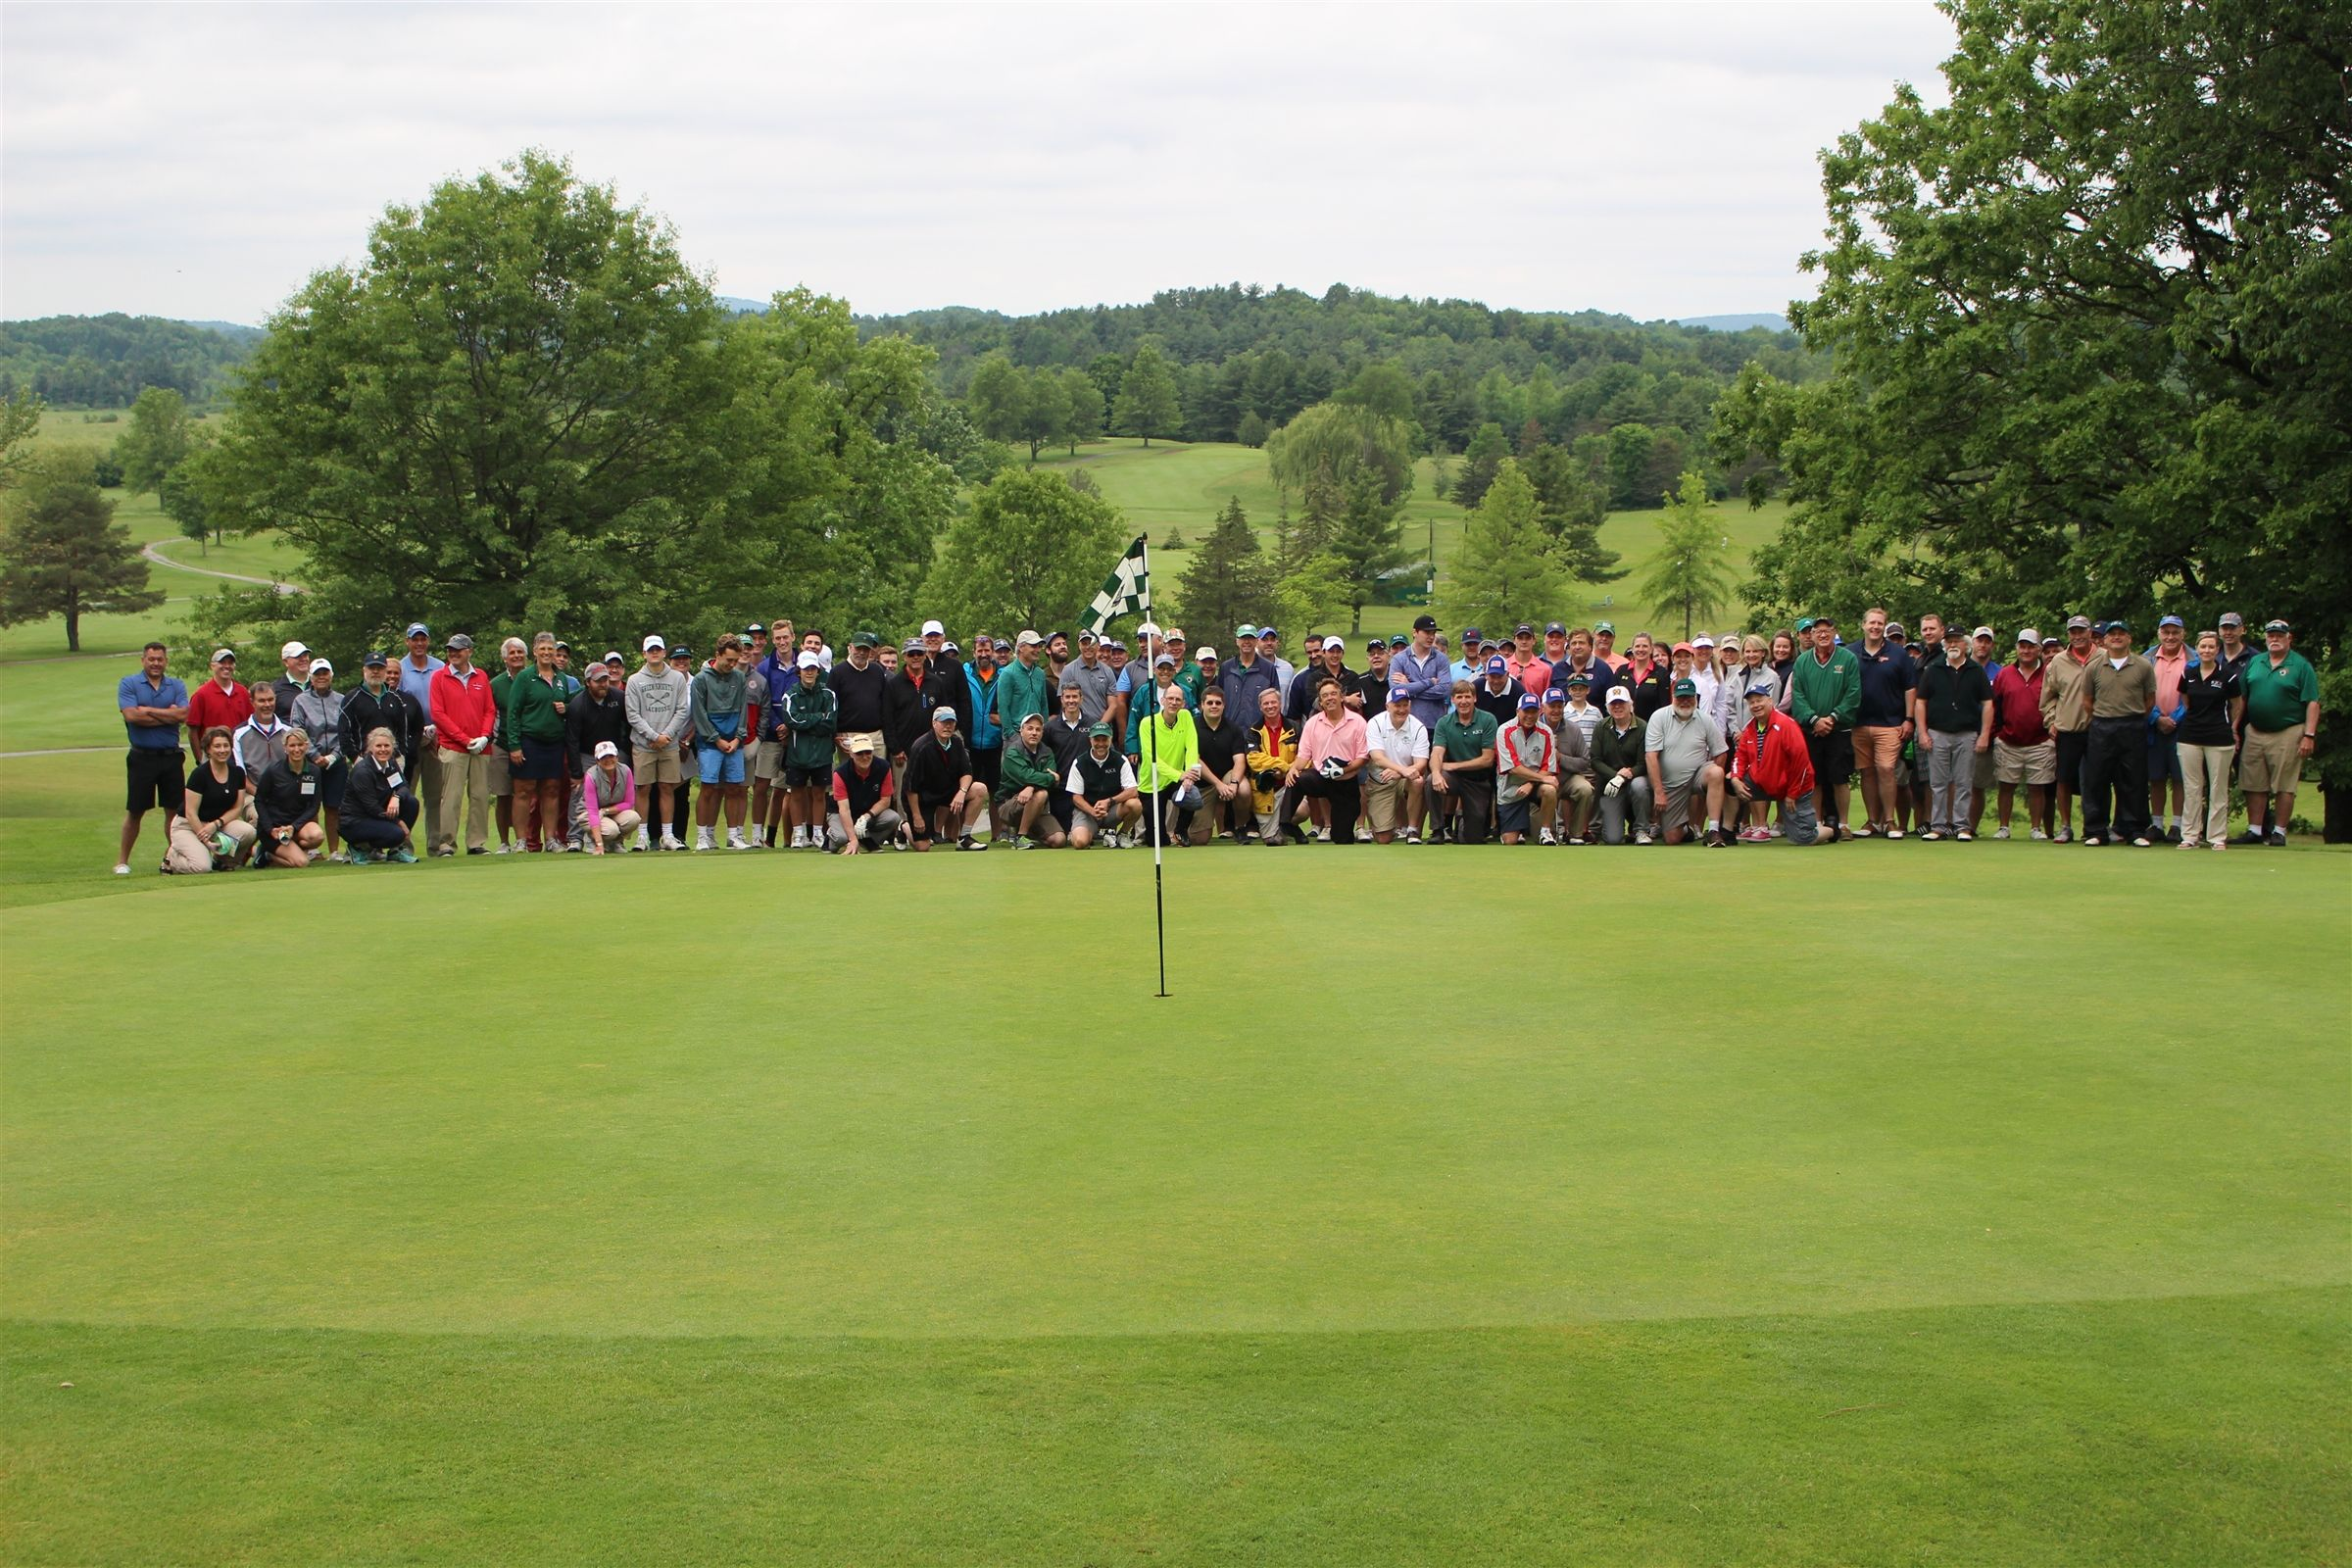 27 four-somes joined us on the course this year.